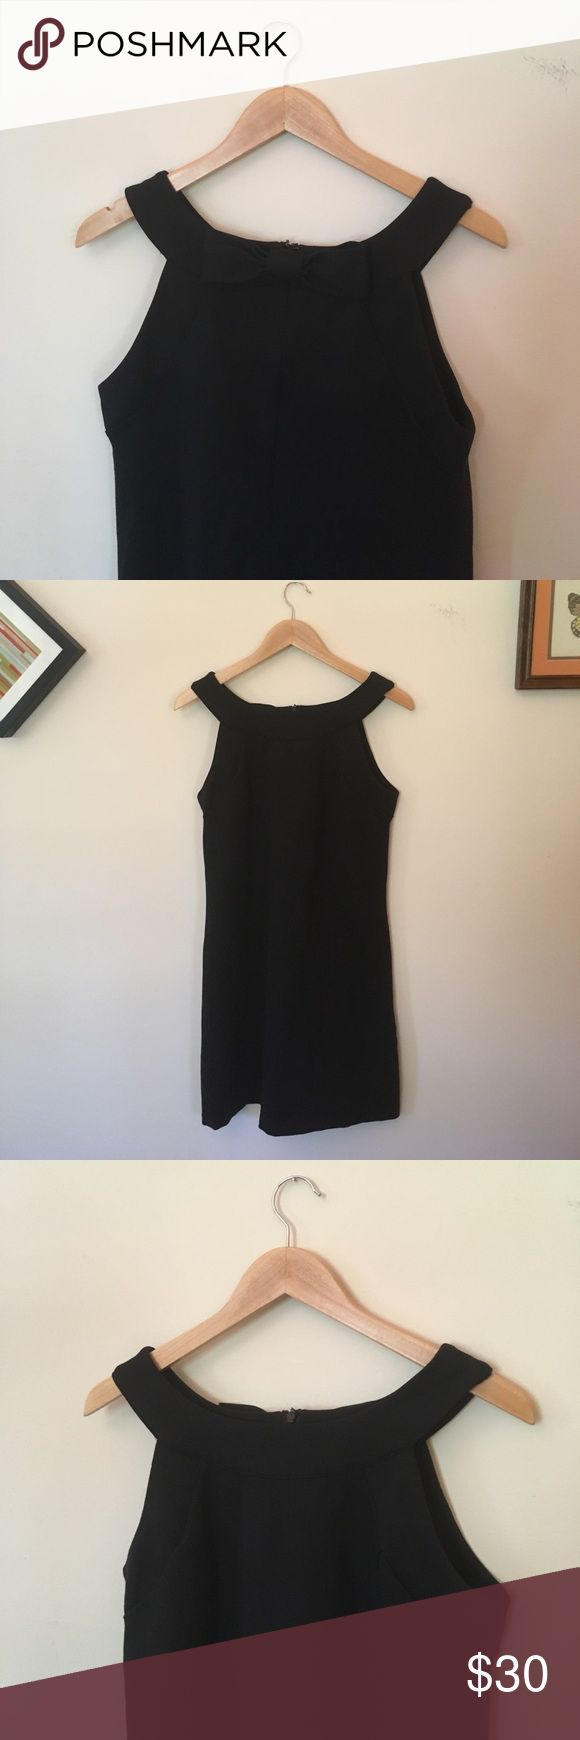 Bow back dress Cute bow back dress. EUC. Zip back. Length: 34 inches. Bust: 17.5 INC International Concepts Dresses